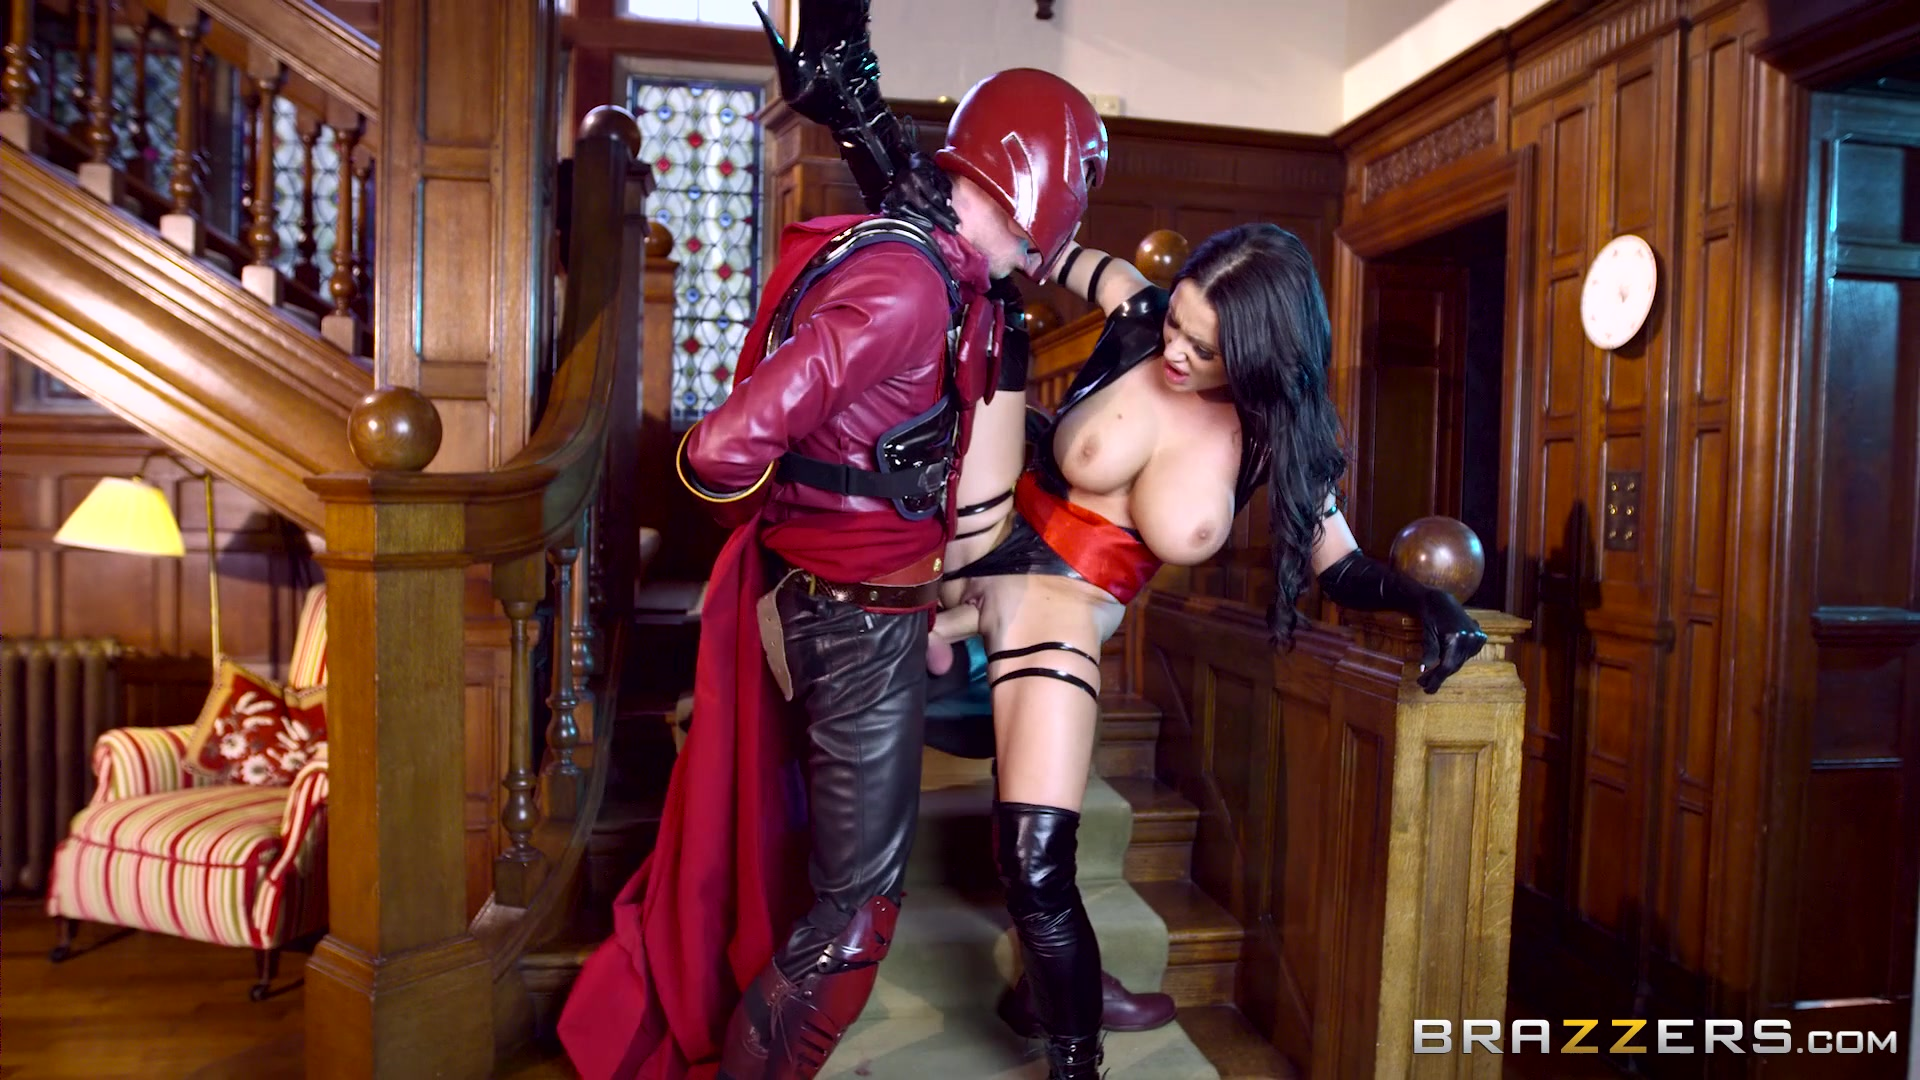 Super Busty Patty Michova Gets Nailed from Behind by a Costumed Man Starring: Patty Michova Length: 28 min